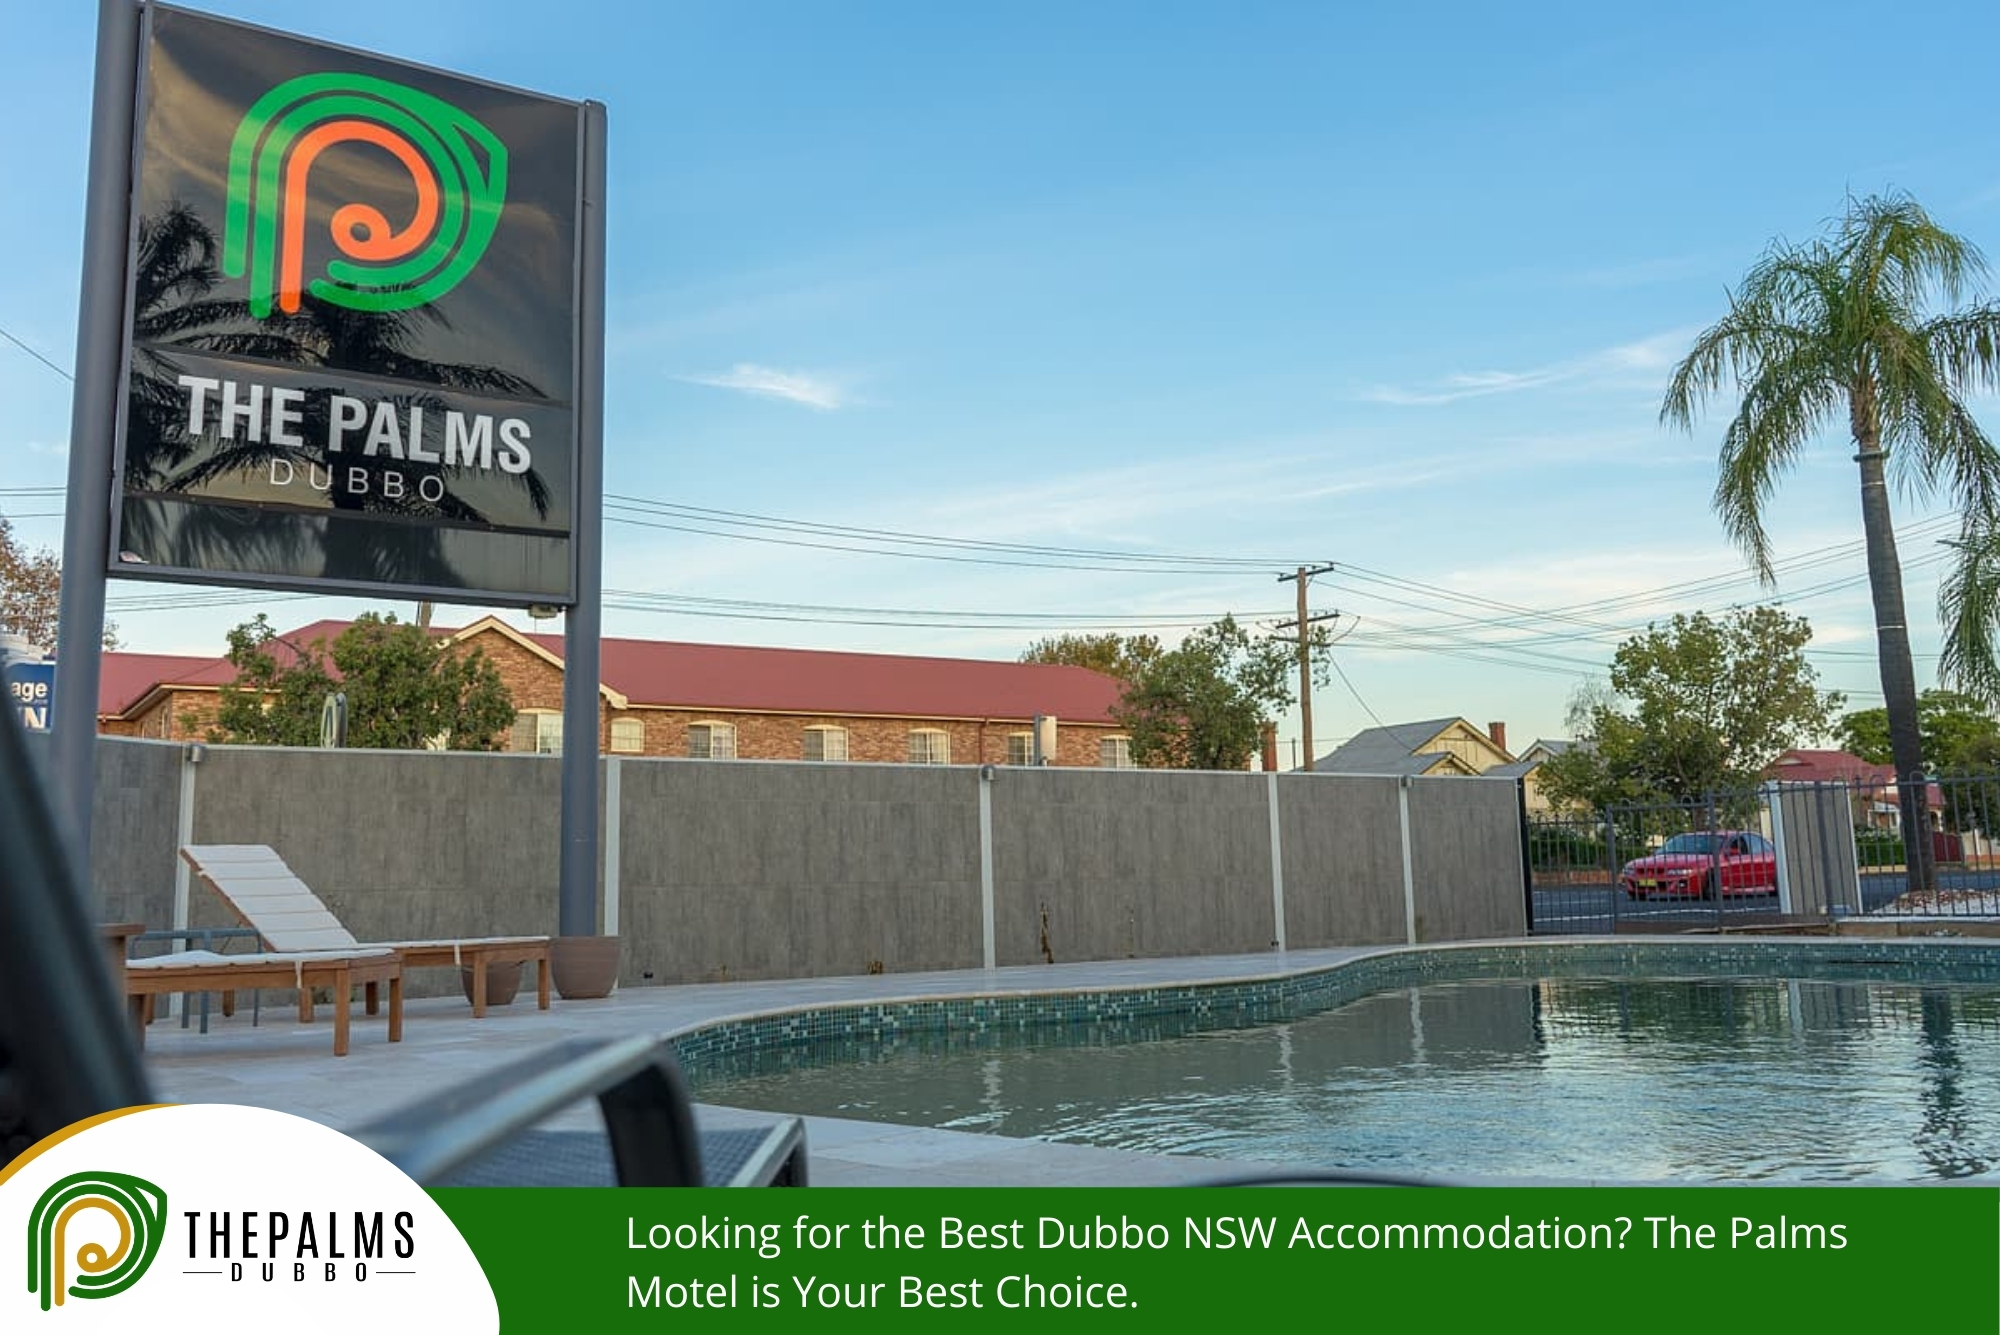 Looking for the Best Dubbo NSW Accommodation The Palms Motel is Your Best Choice.